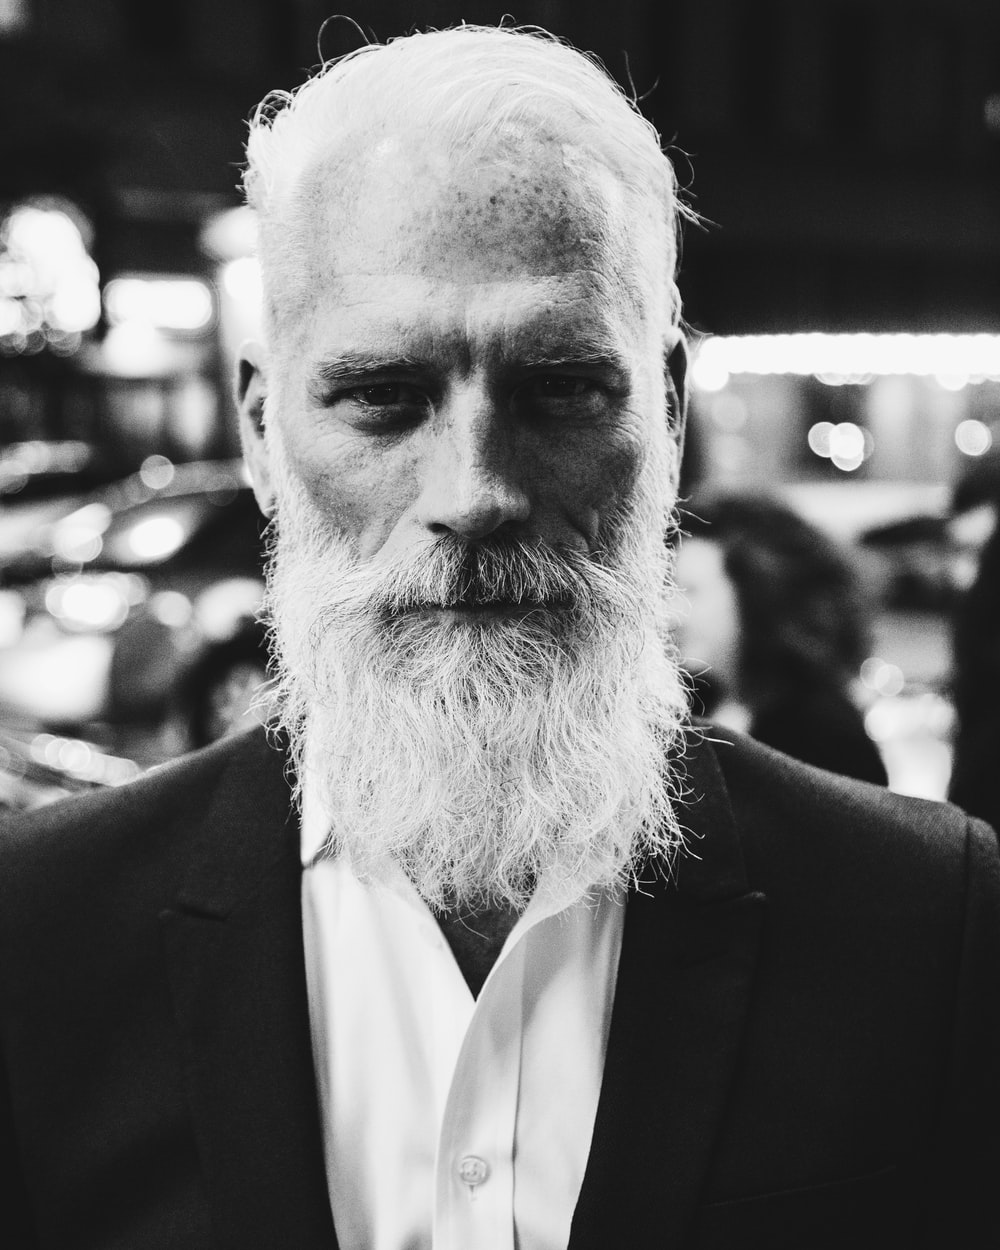 grayscale photo of bearded man